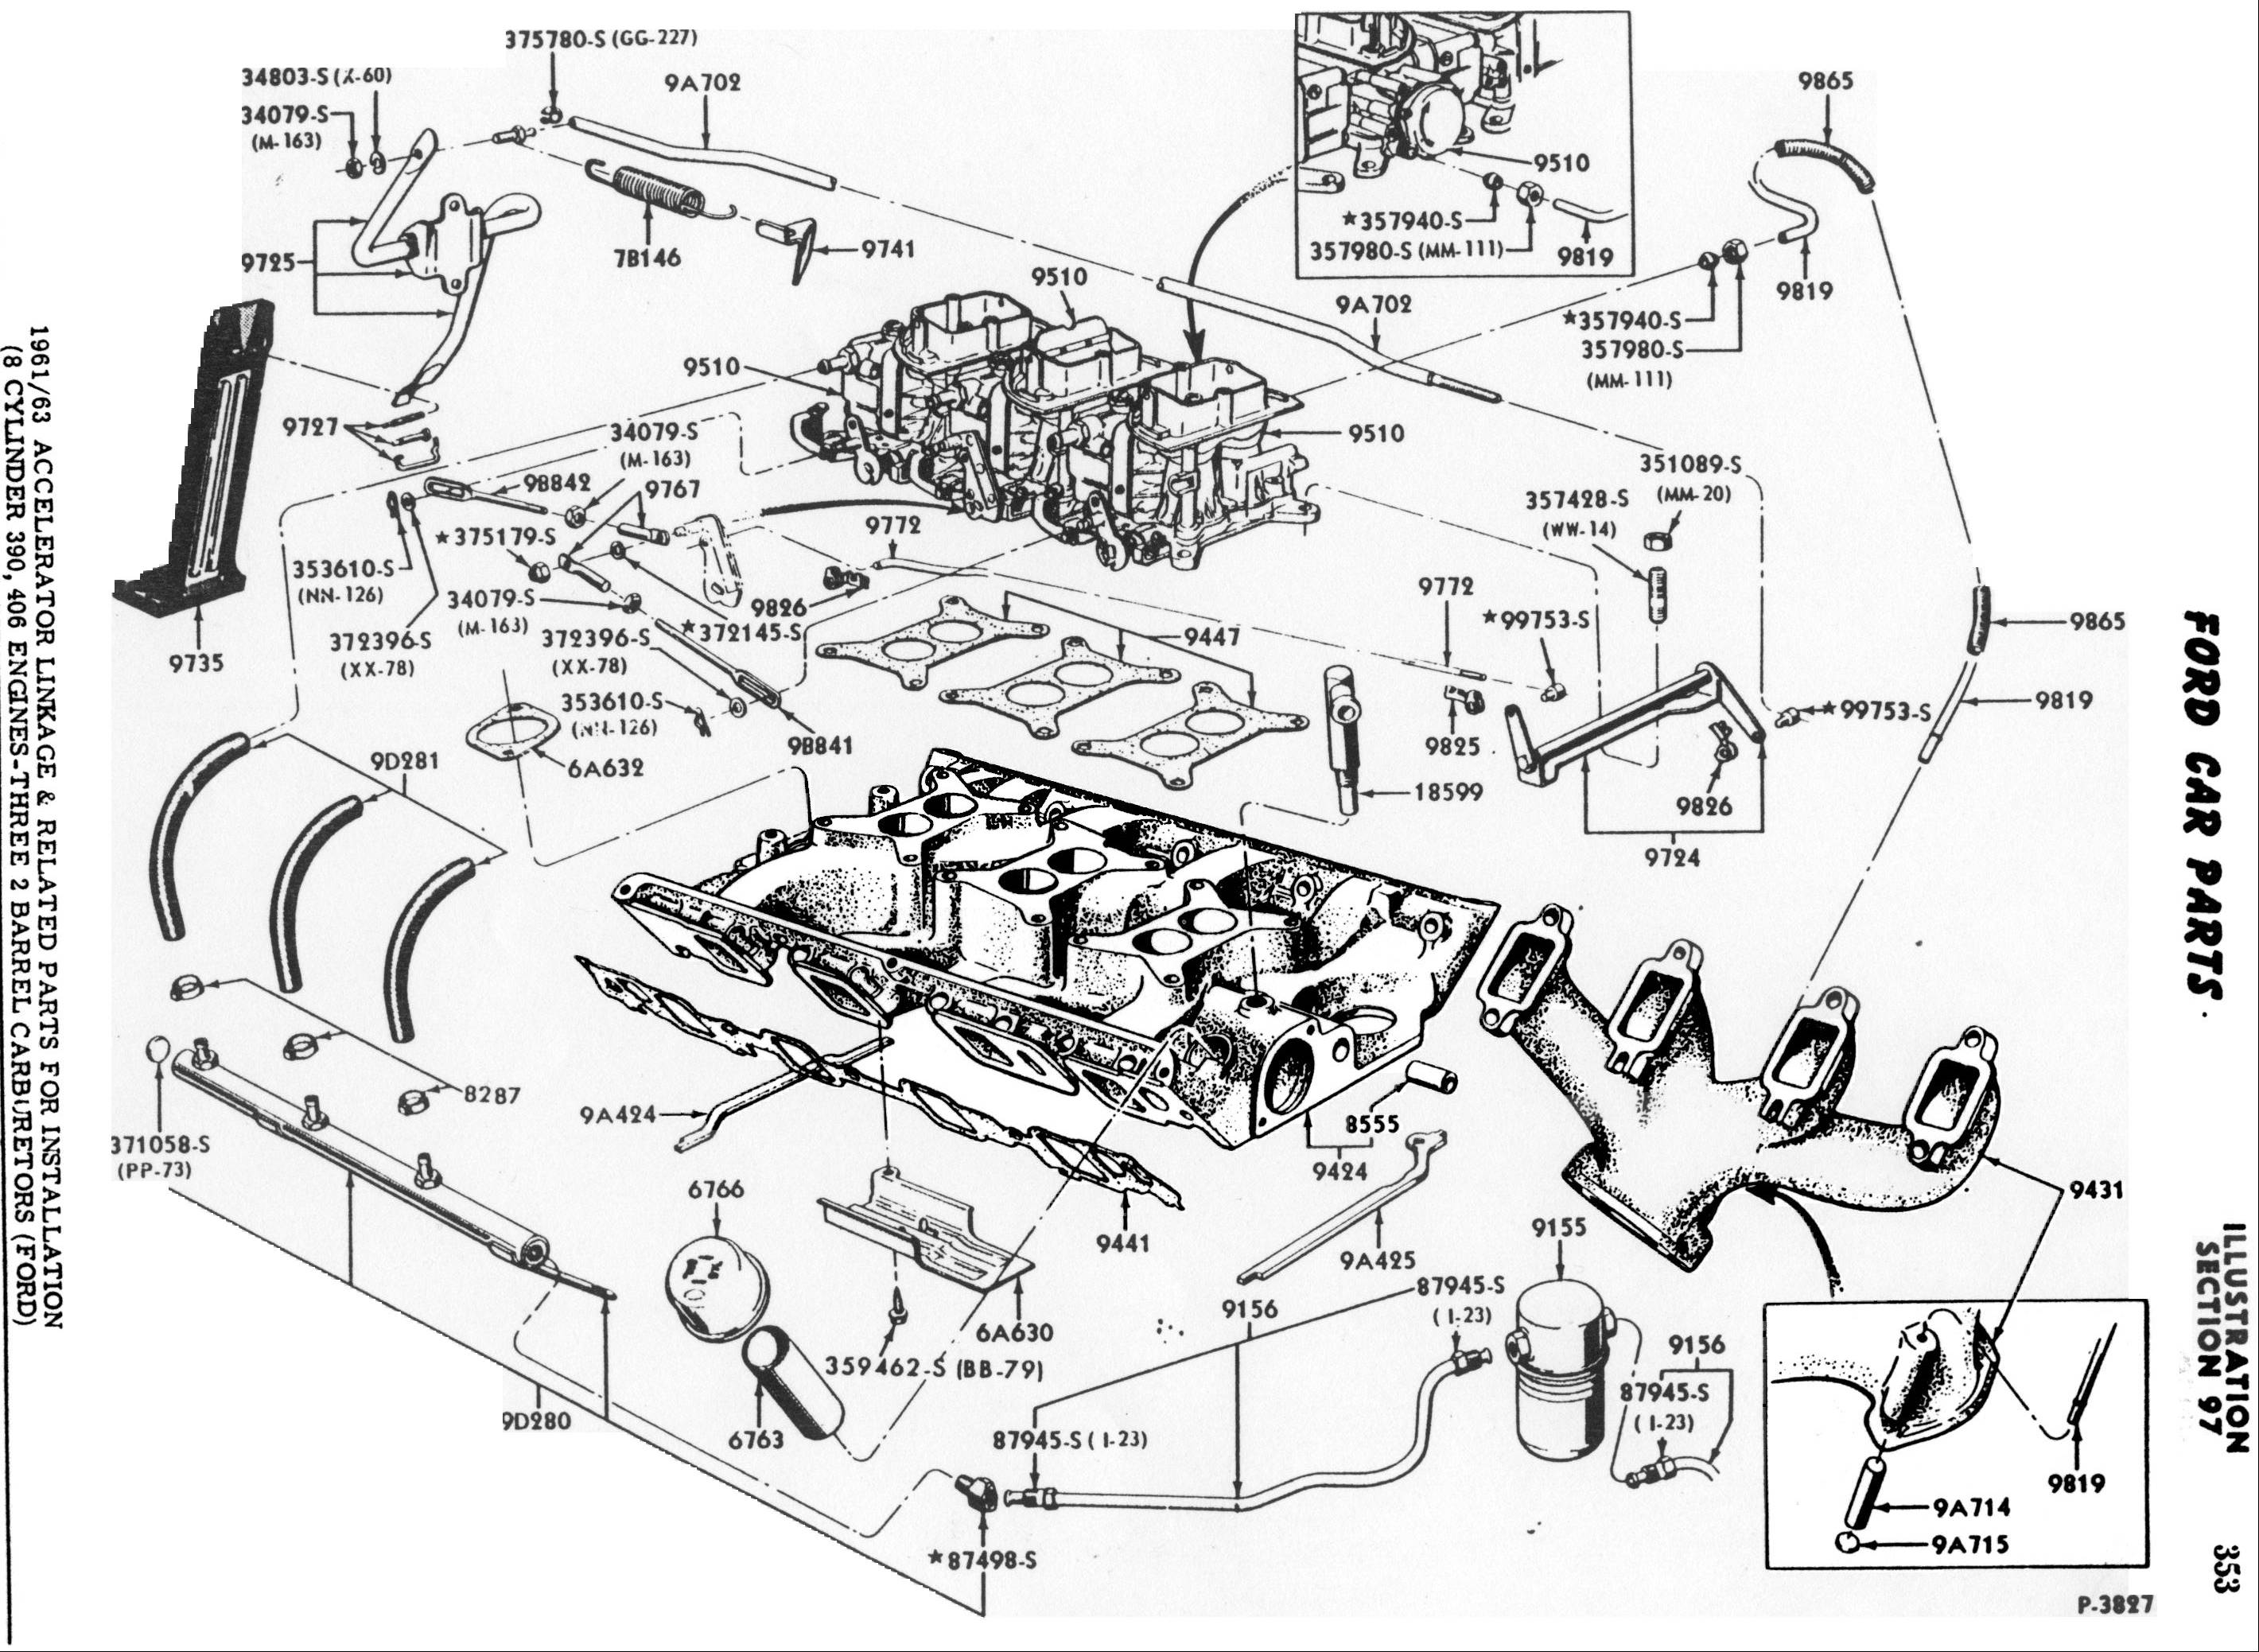 1970 ford 302 engine diagram 1984 ford 302 engine diagram